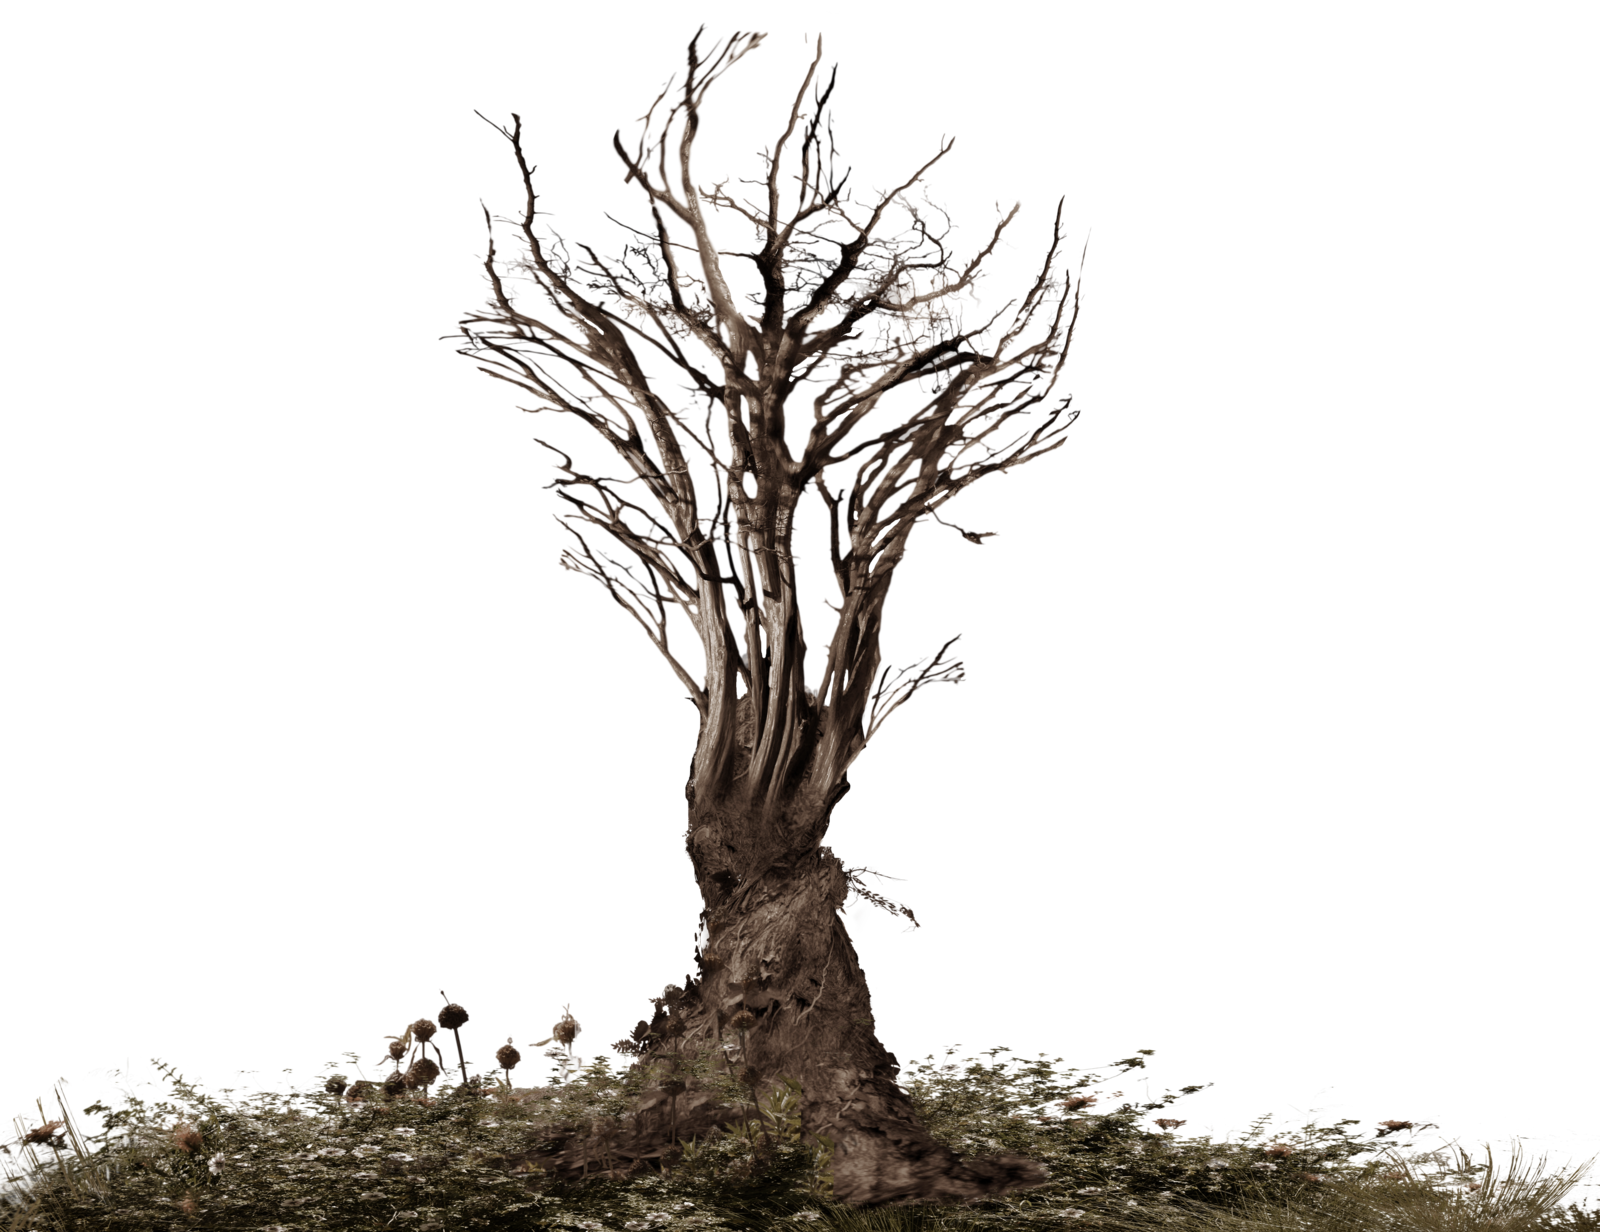 Http Img06 Deviantart Net Bce1 I 2014 246 A 5 Twisted Scary Tree Stock Photo Png By Annamae22 D7xu89j Png Tree Roots Flower Images Beautiful Tree